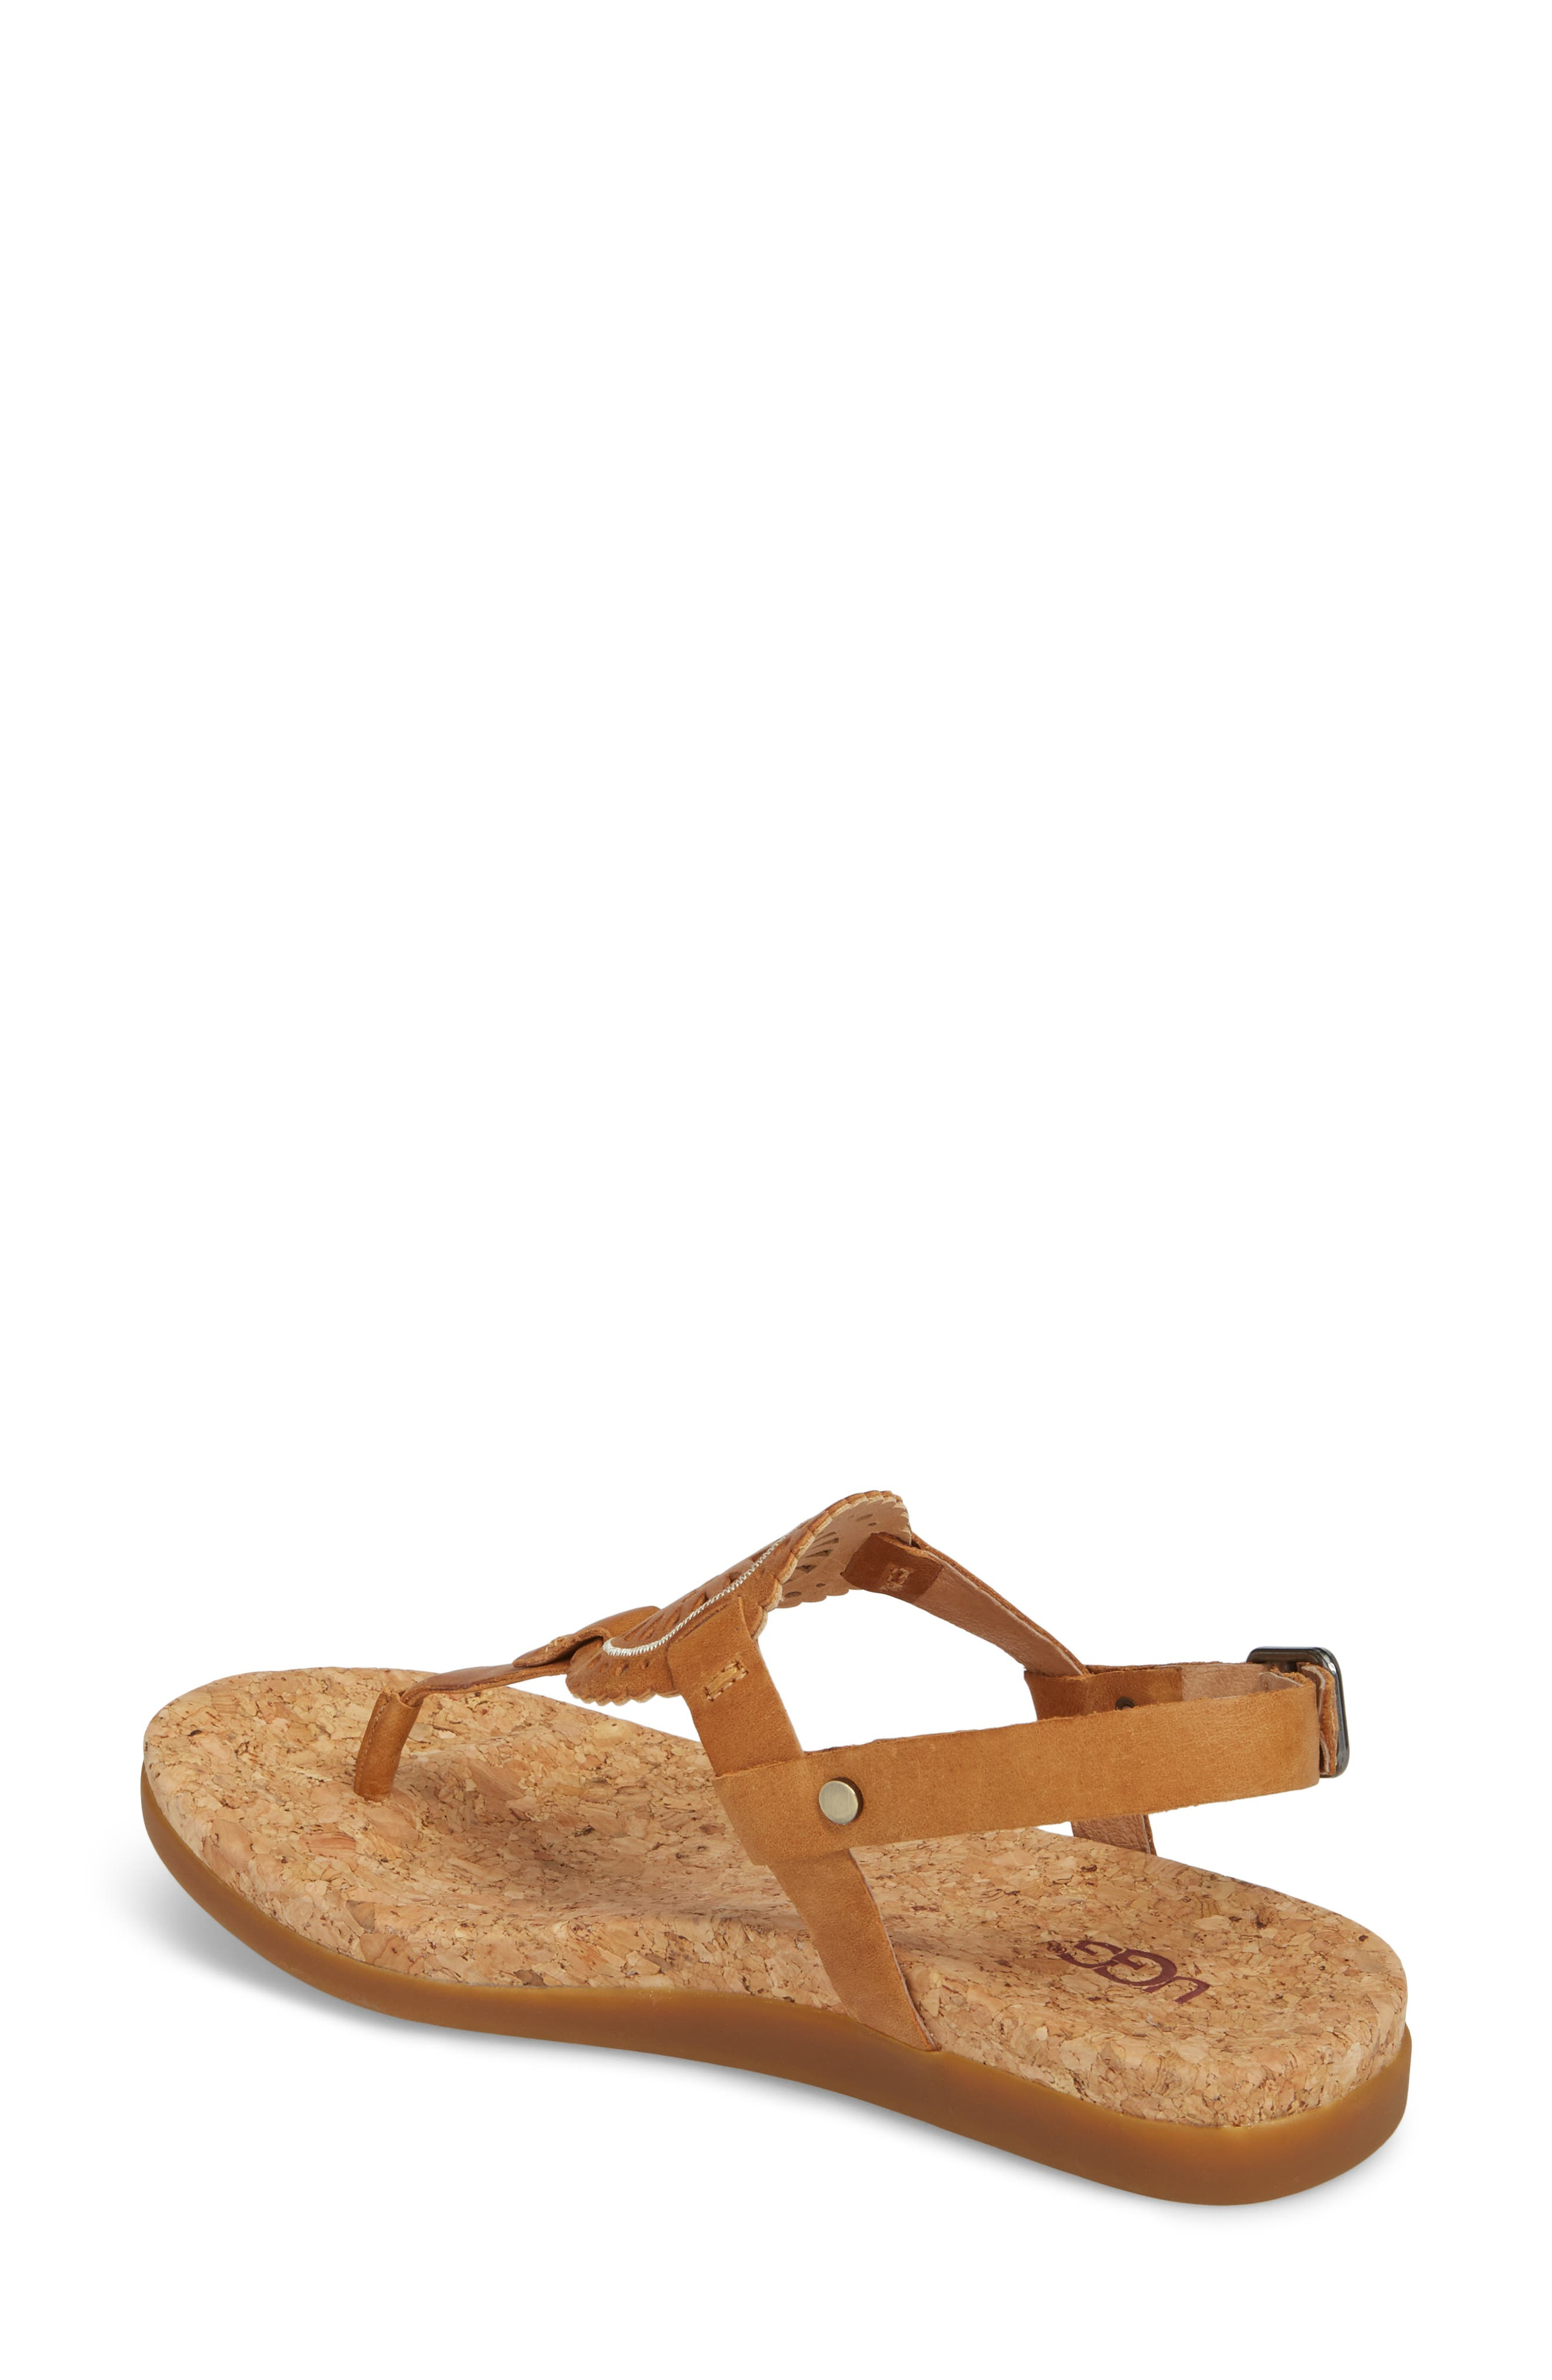 Ayden II T-Strap Sandal,                             Alternate thumbnail 2, color,                             Almond Leather